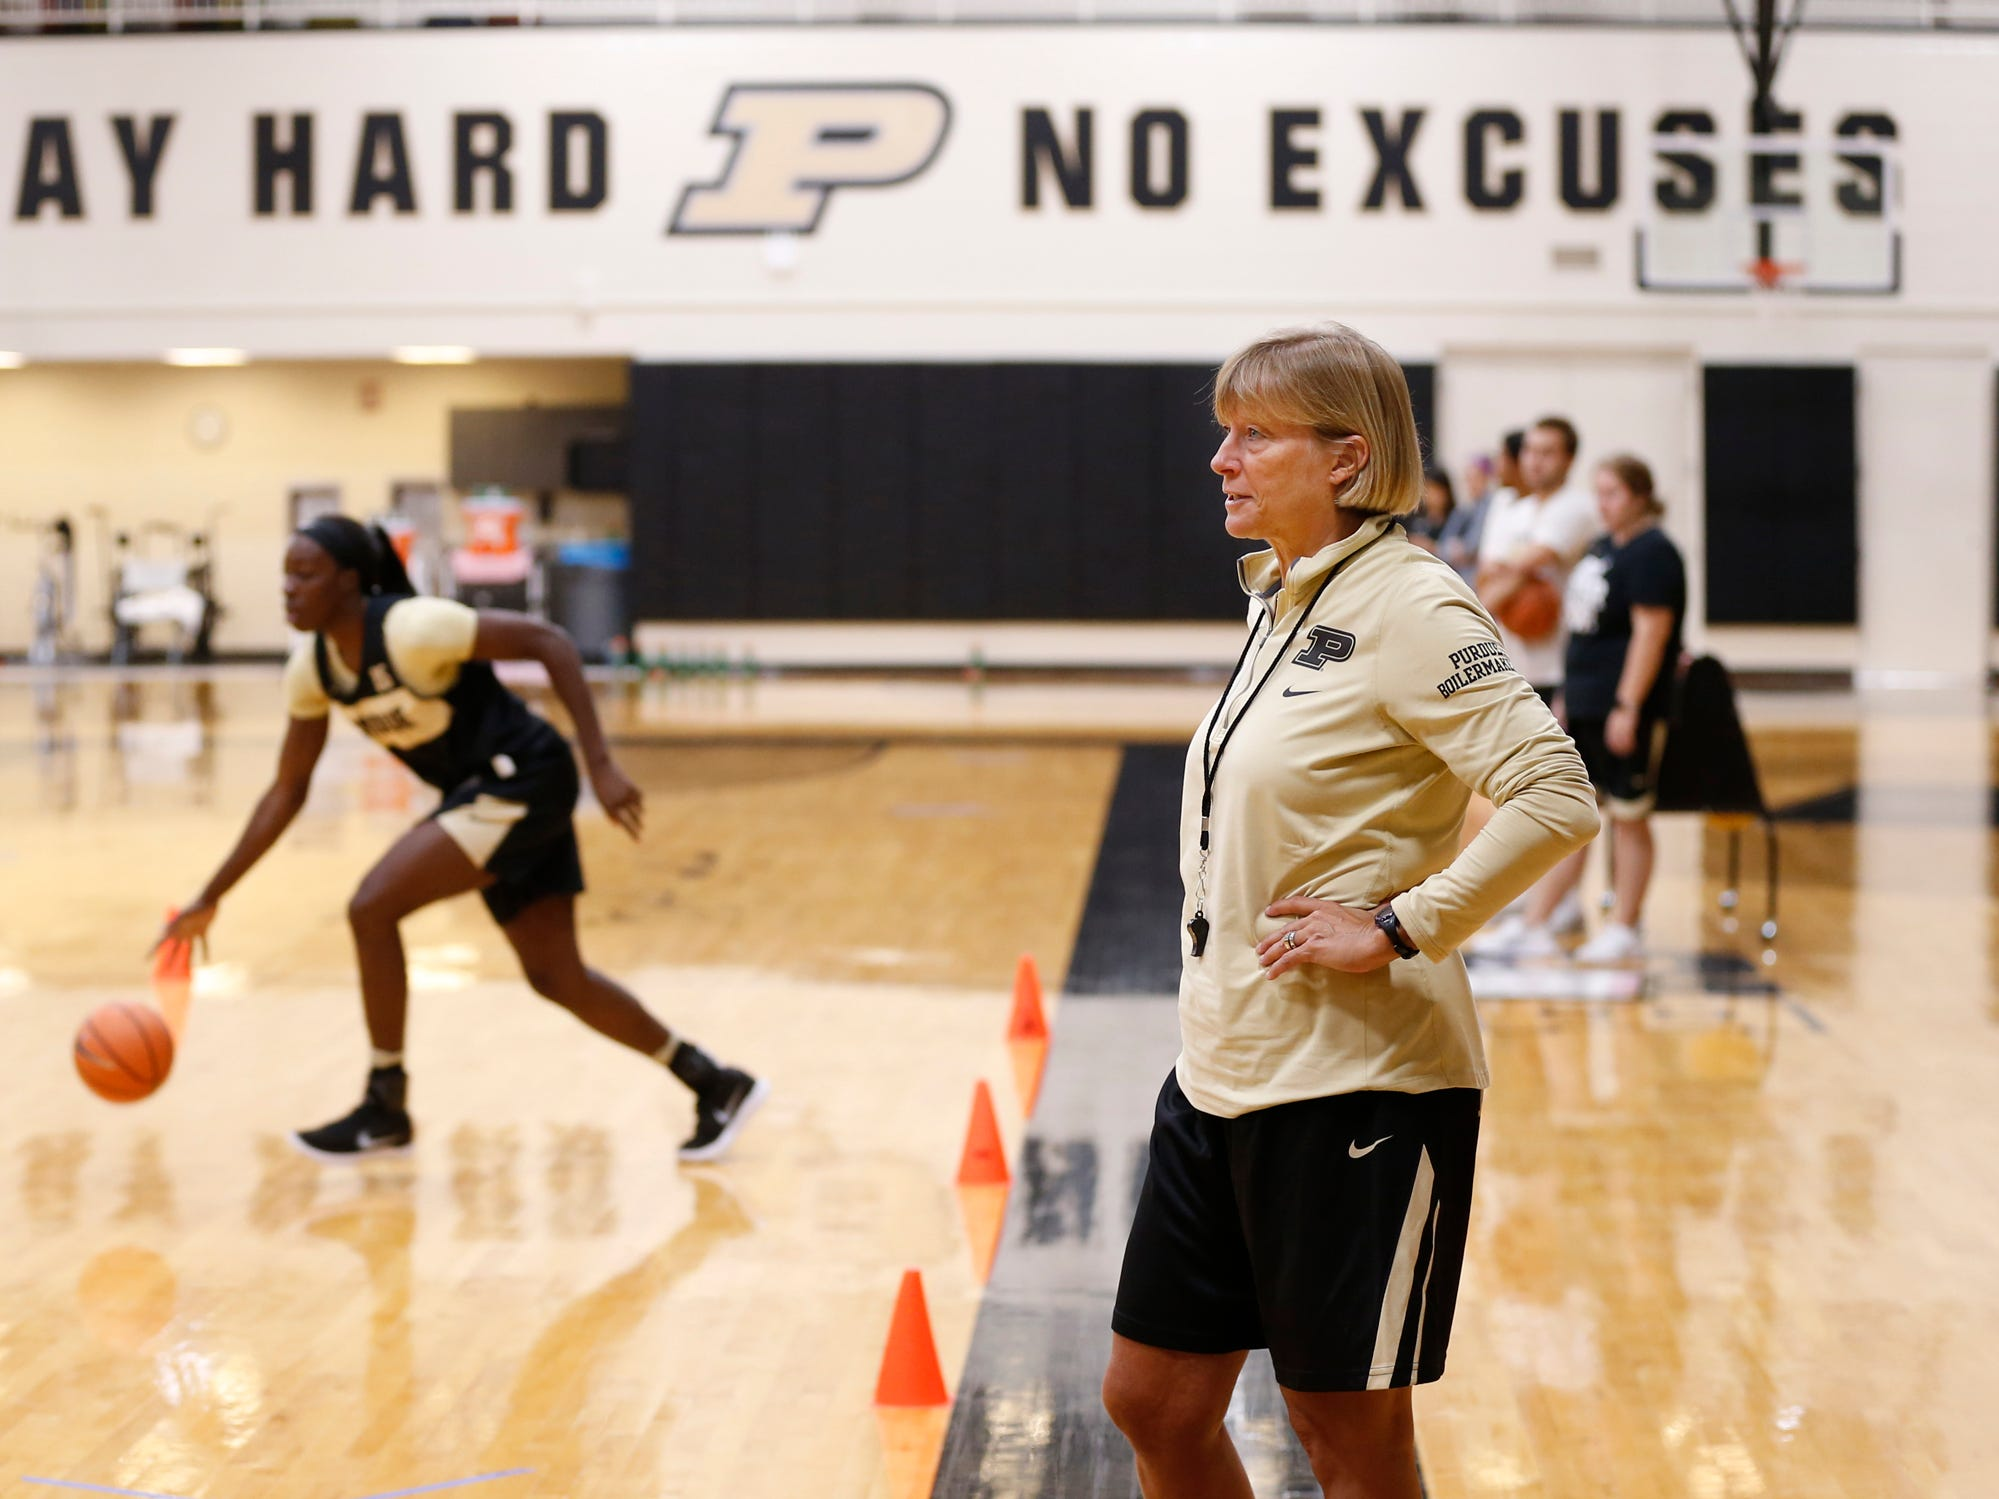 Head coach Sharon Versyp looks on as players run a series of dribbling drills during Purdue women's basketball Wednesday, September 26, 2018, at Cardinal Court in Mackey Arena.